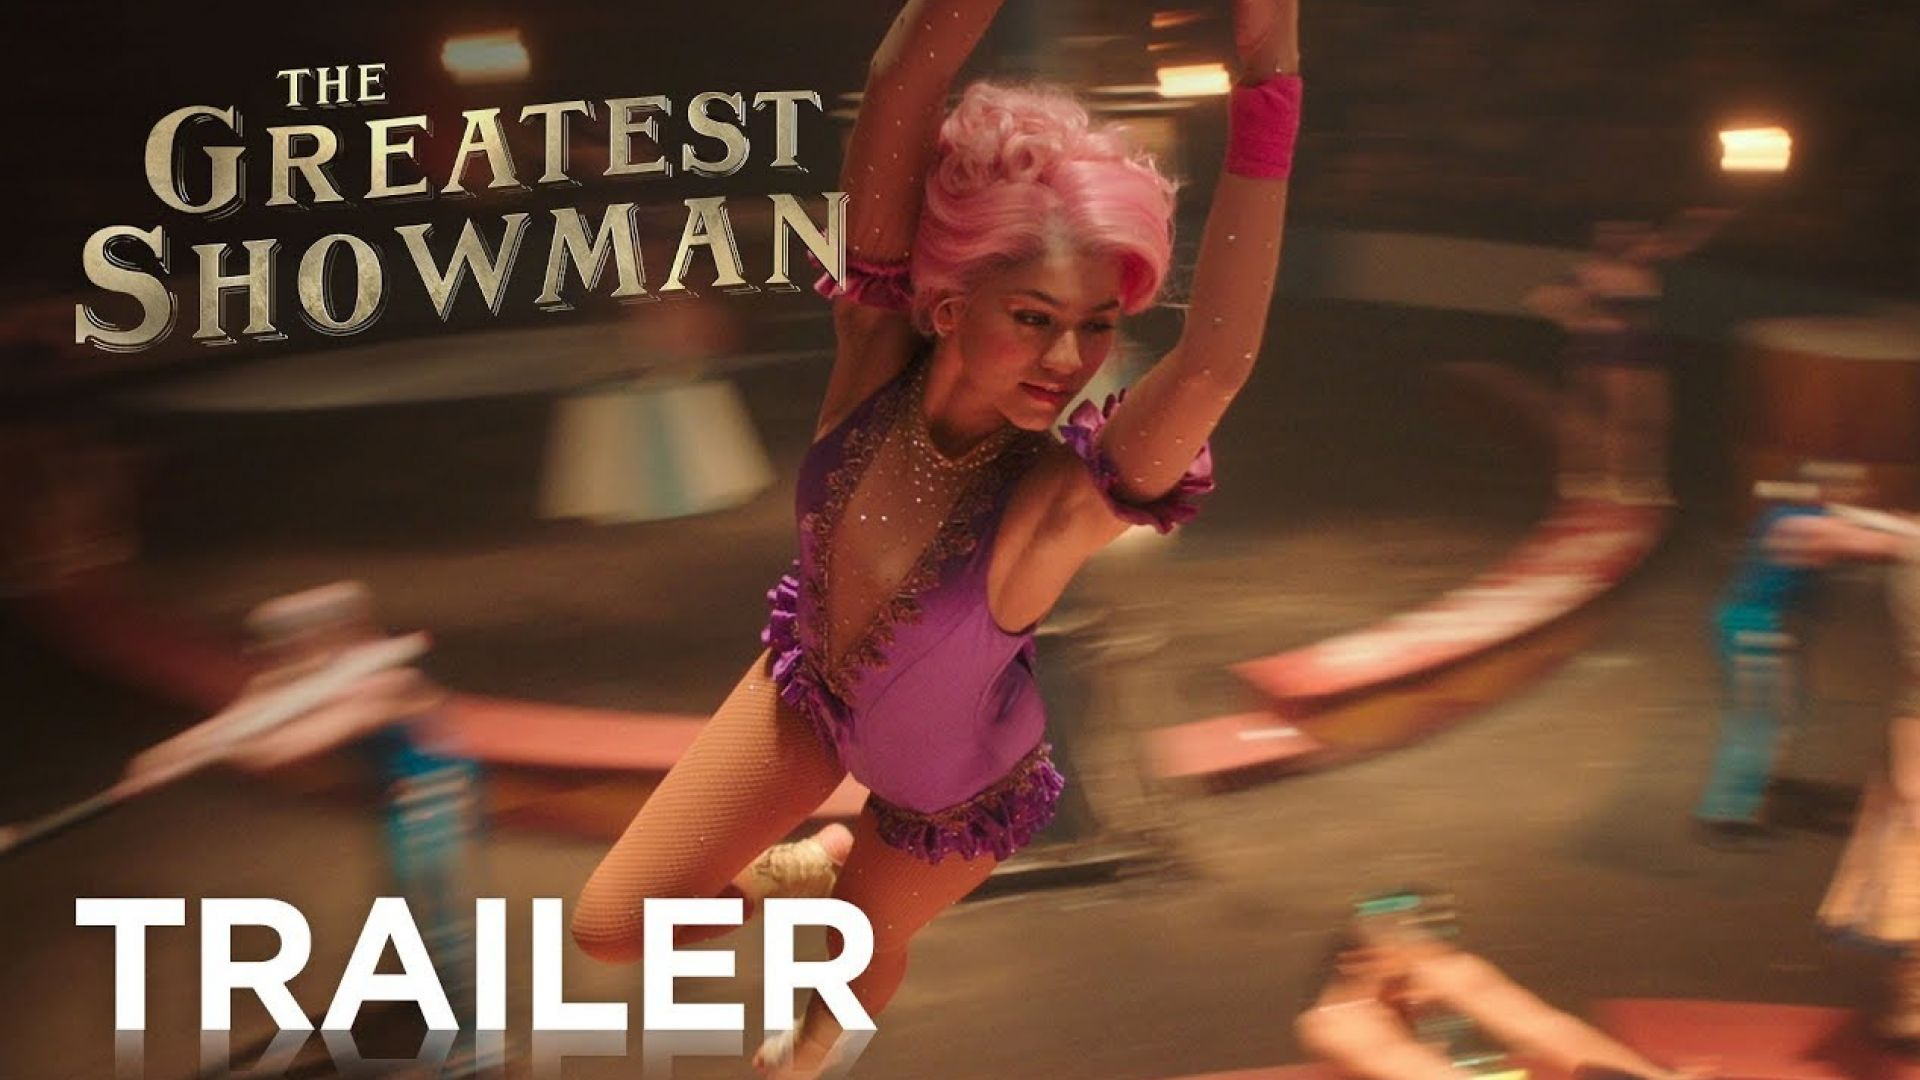 'The Greatest Showman' Trailer 2 - 20th Century Fox